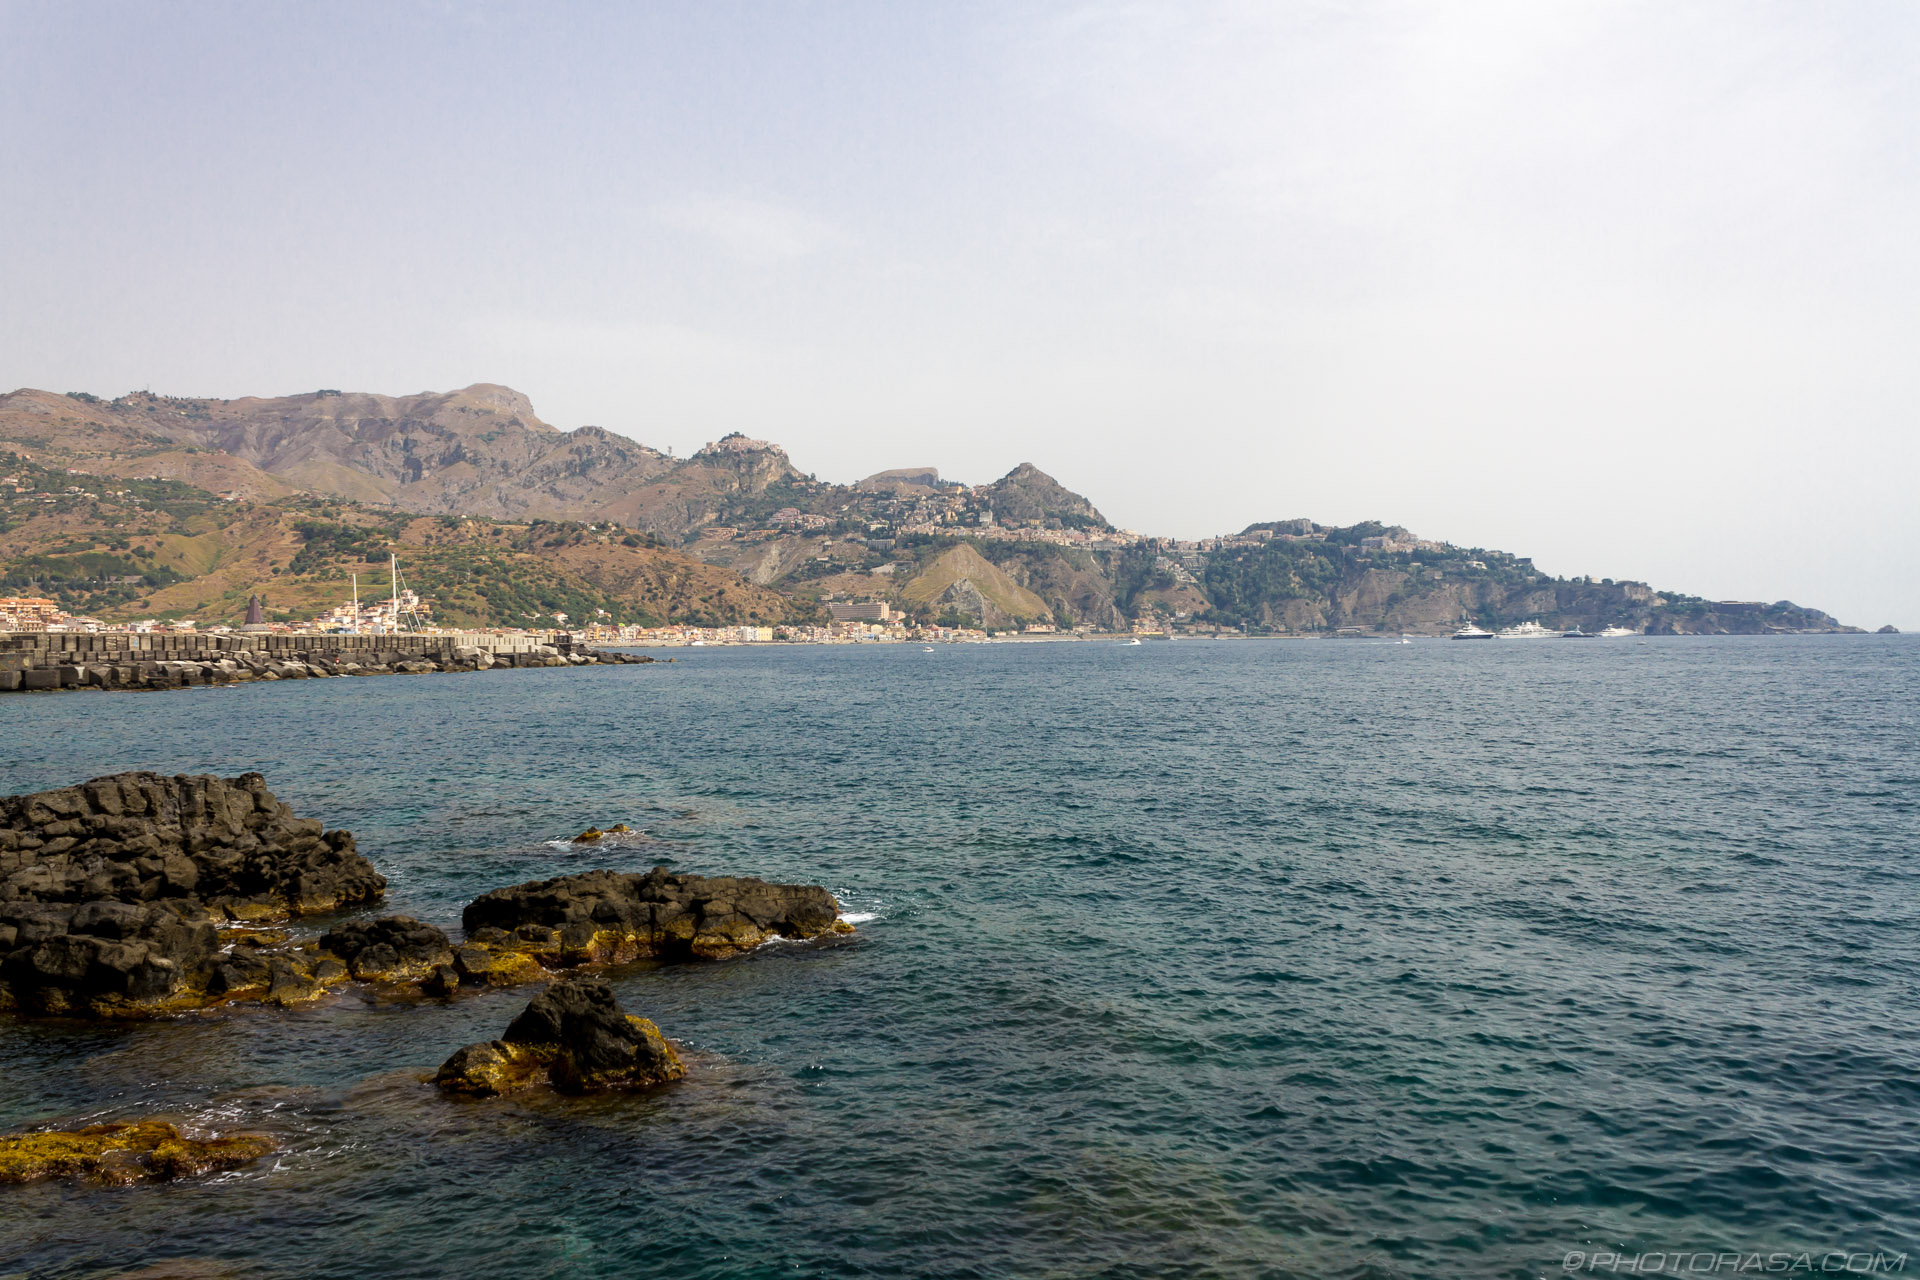 https://photorasa.com/giardini-naxos/giardini-naxos-coast-and-hills/